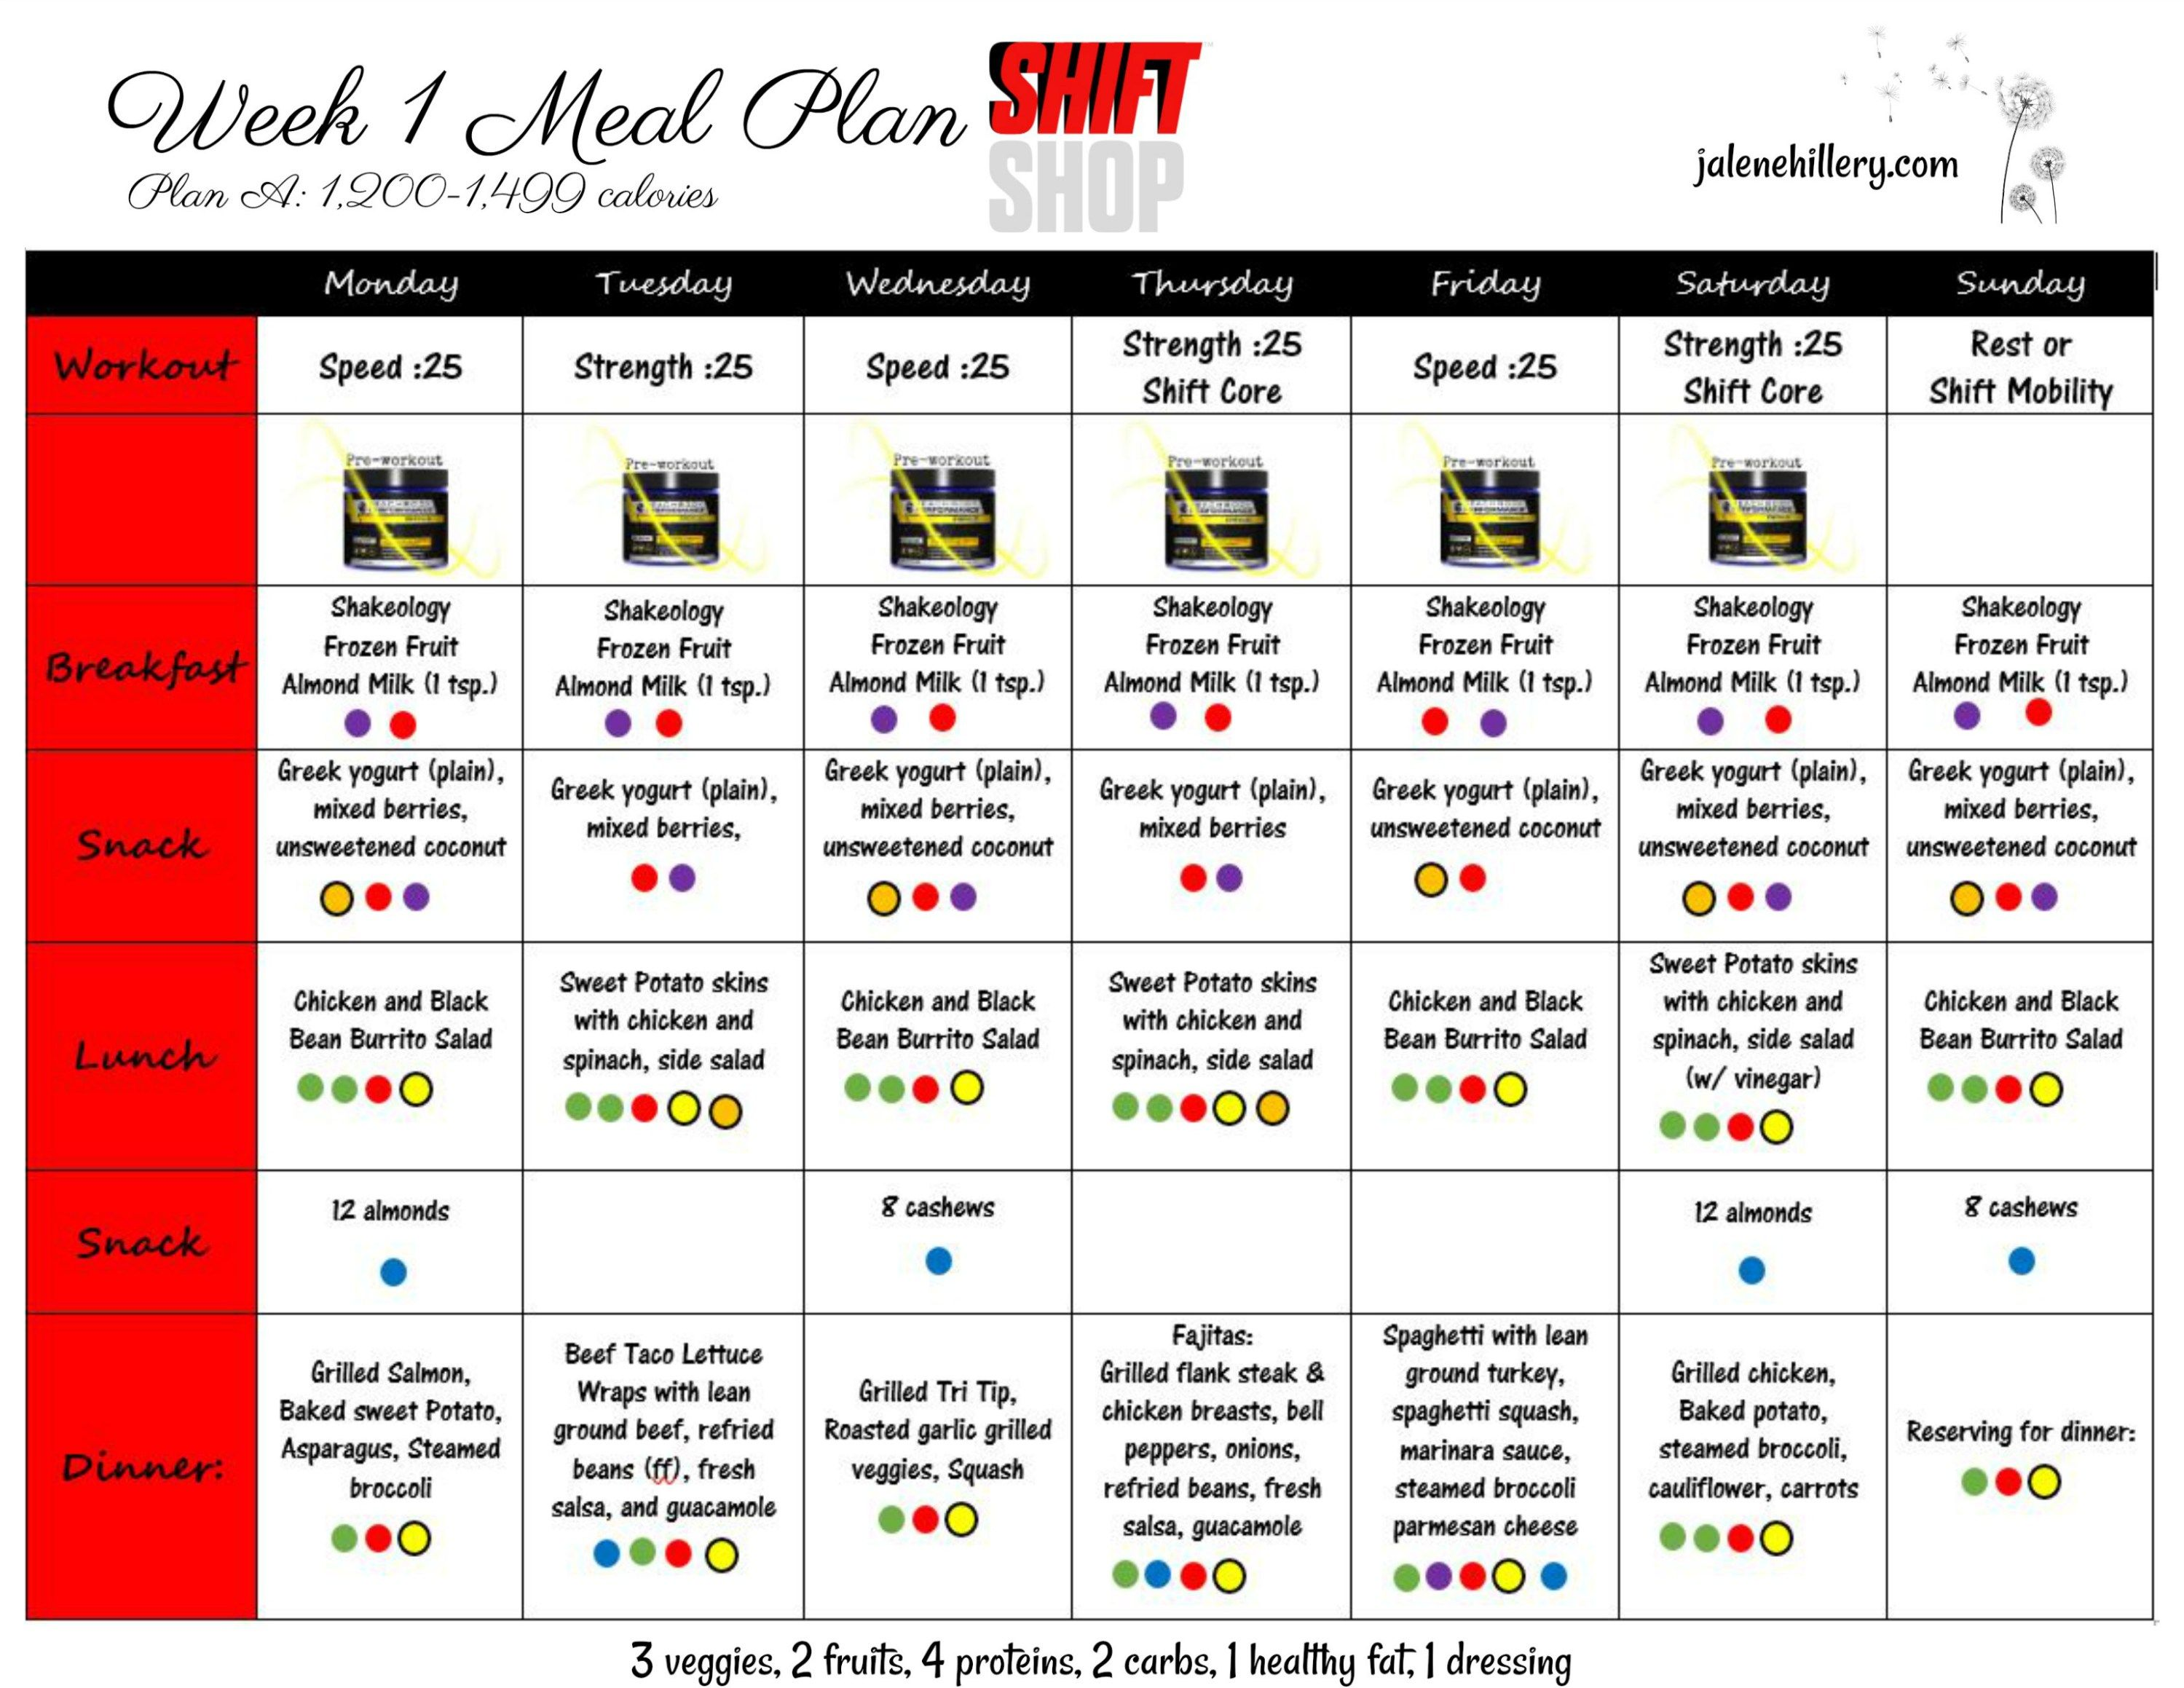 shift shop and week 1 meal plan jalene hillery jalene s family